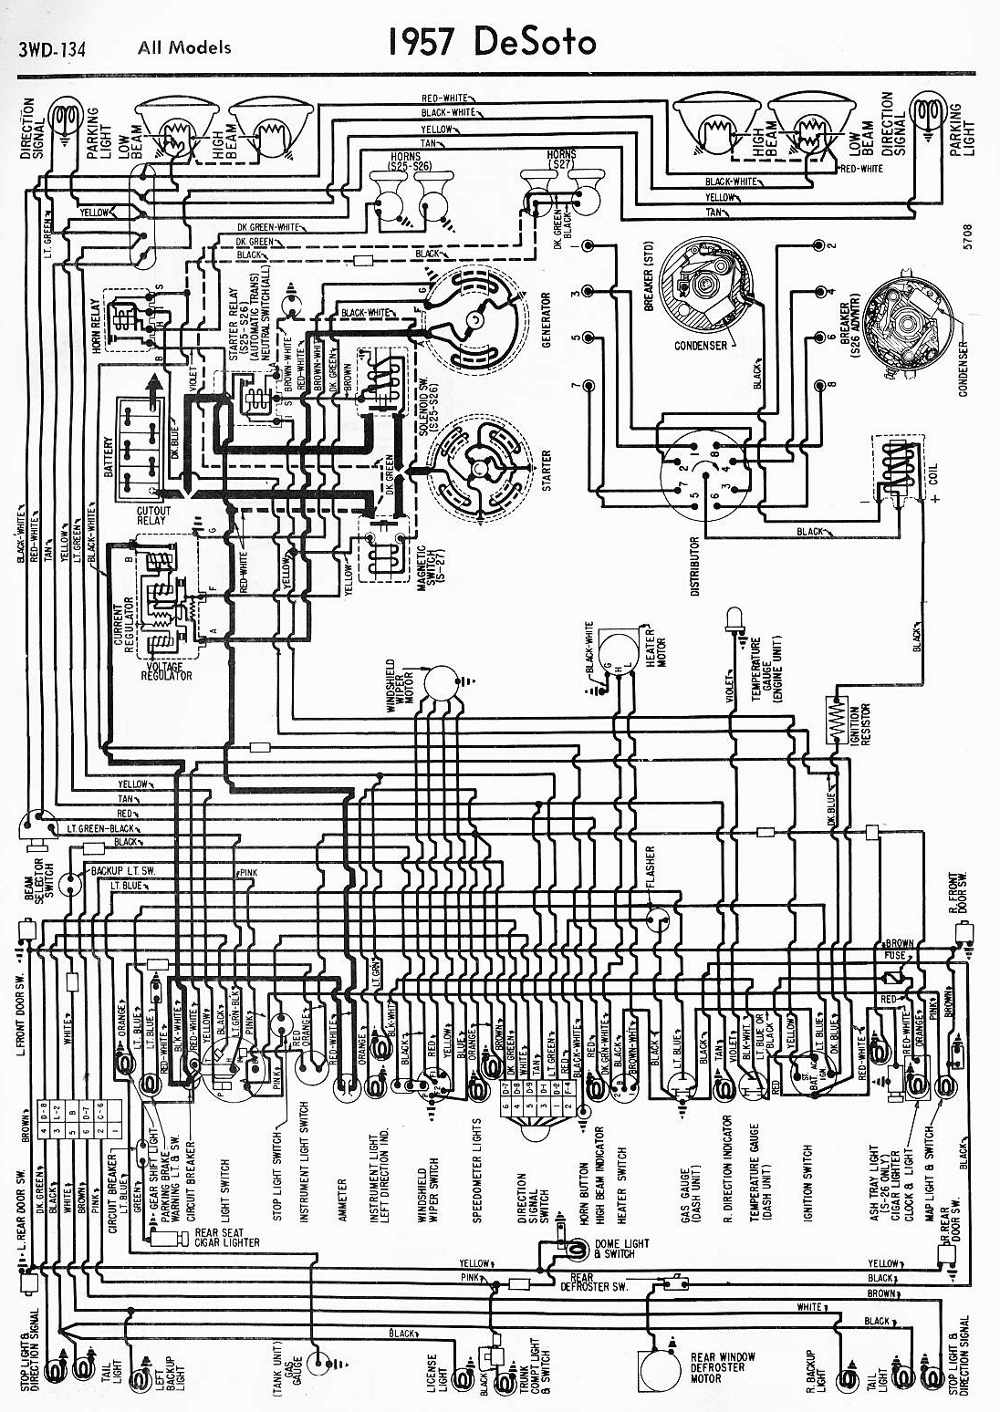 Desoto Gas Gauge Wiring Diagram Schematic Diagrams Jeep Fuel For 1972 1950 Electrical 1949 Chrysler